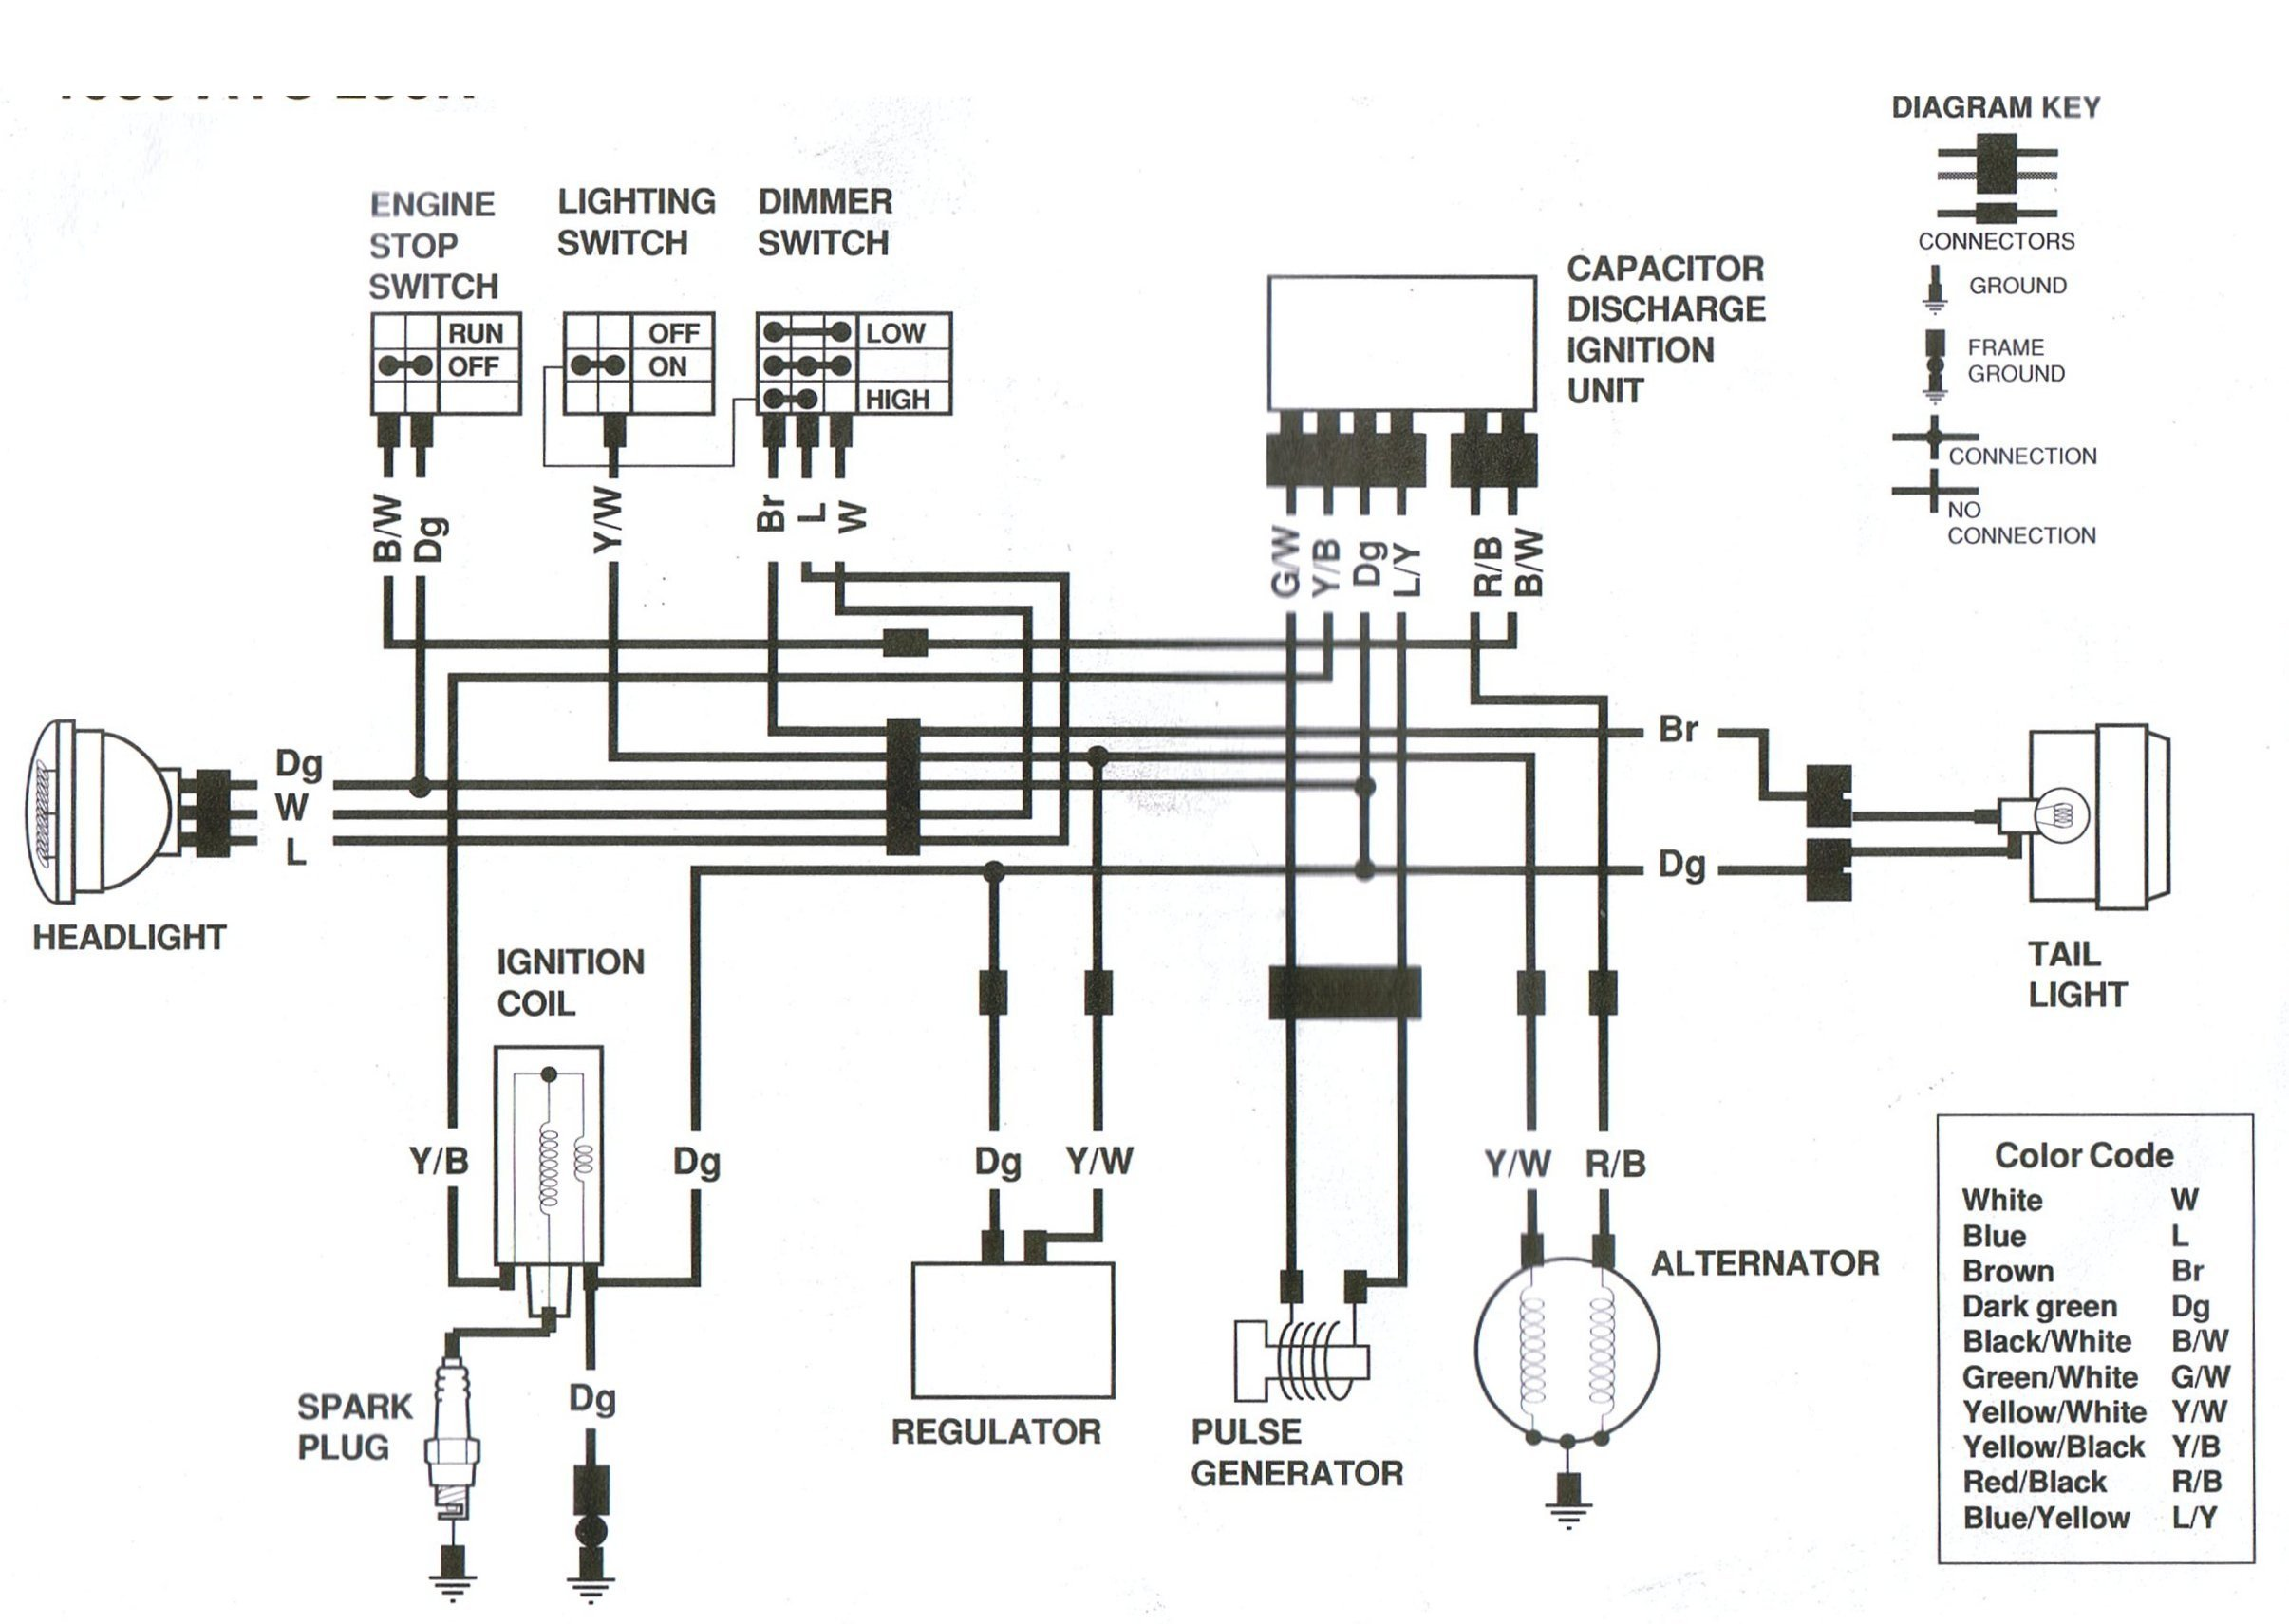 figure 36 schematic wiring diagram of main propulsion control